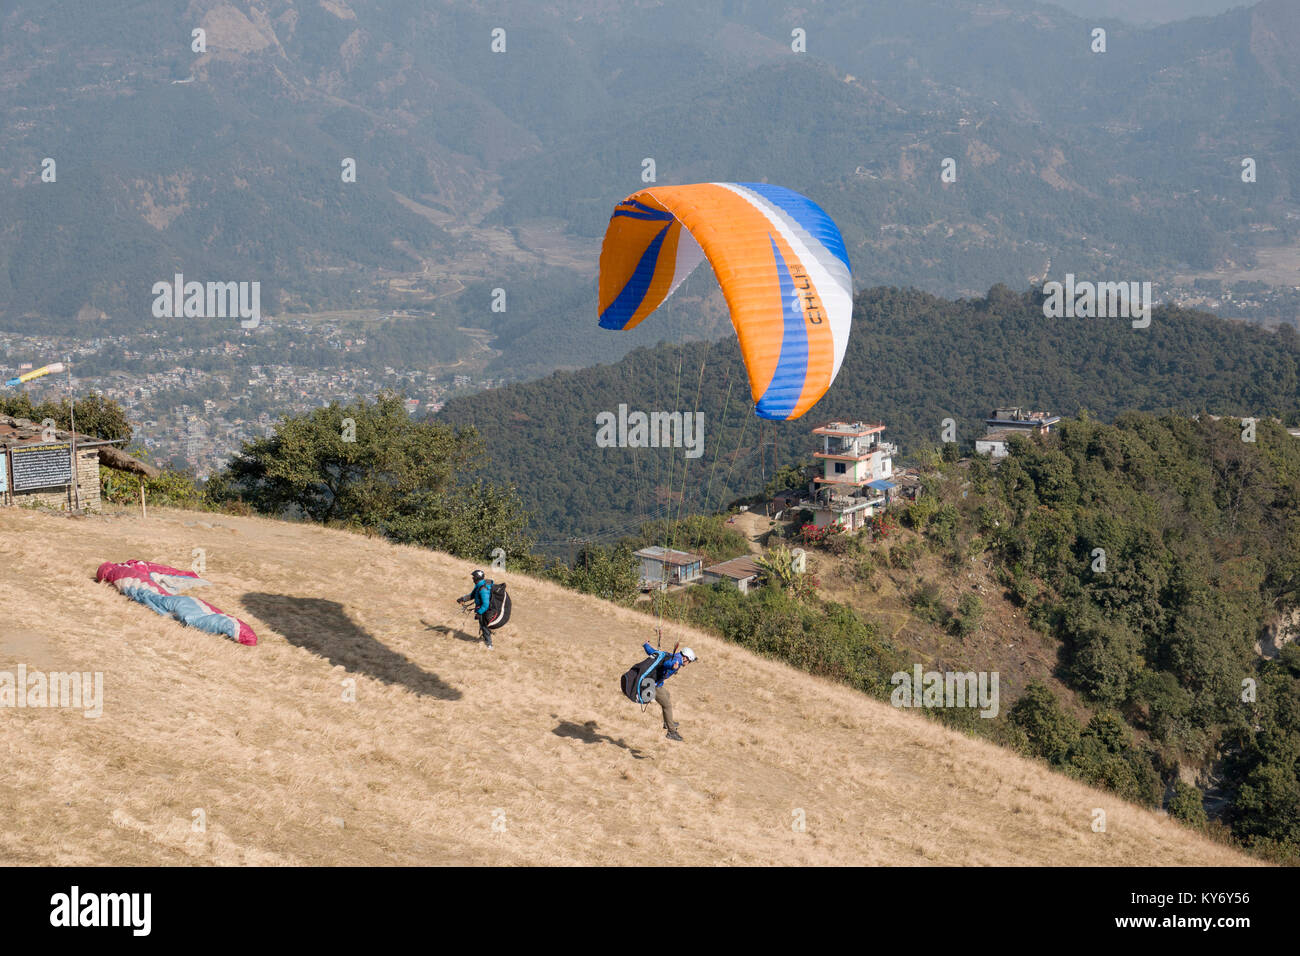 Paragliding launching zone at Sarankot, Pokhara, Nepal - Stock Image